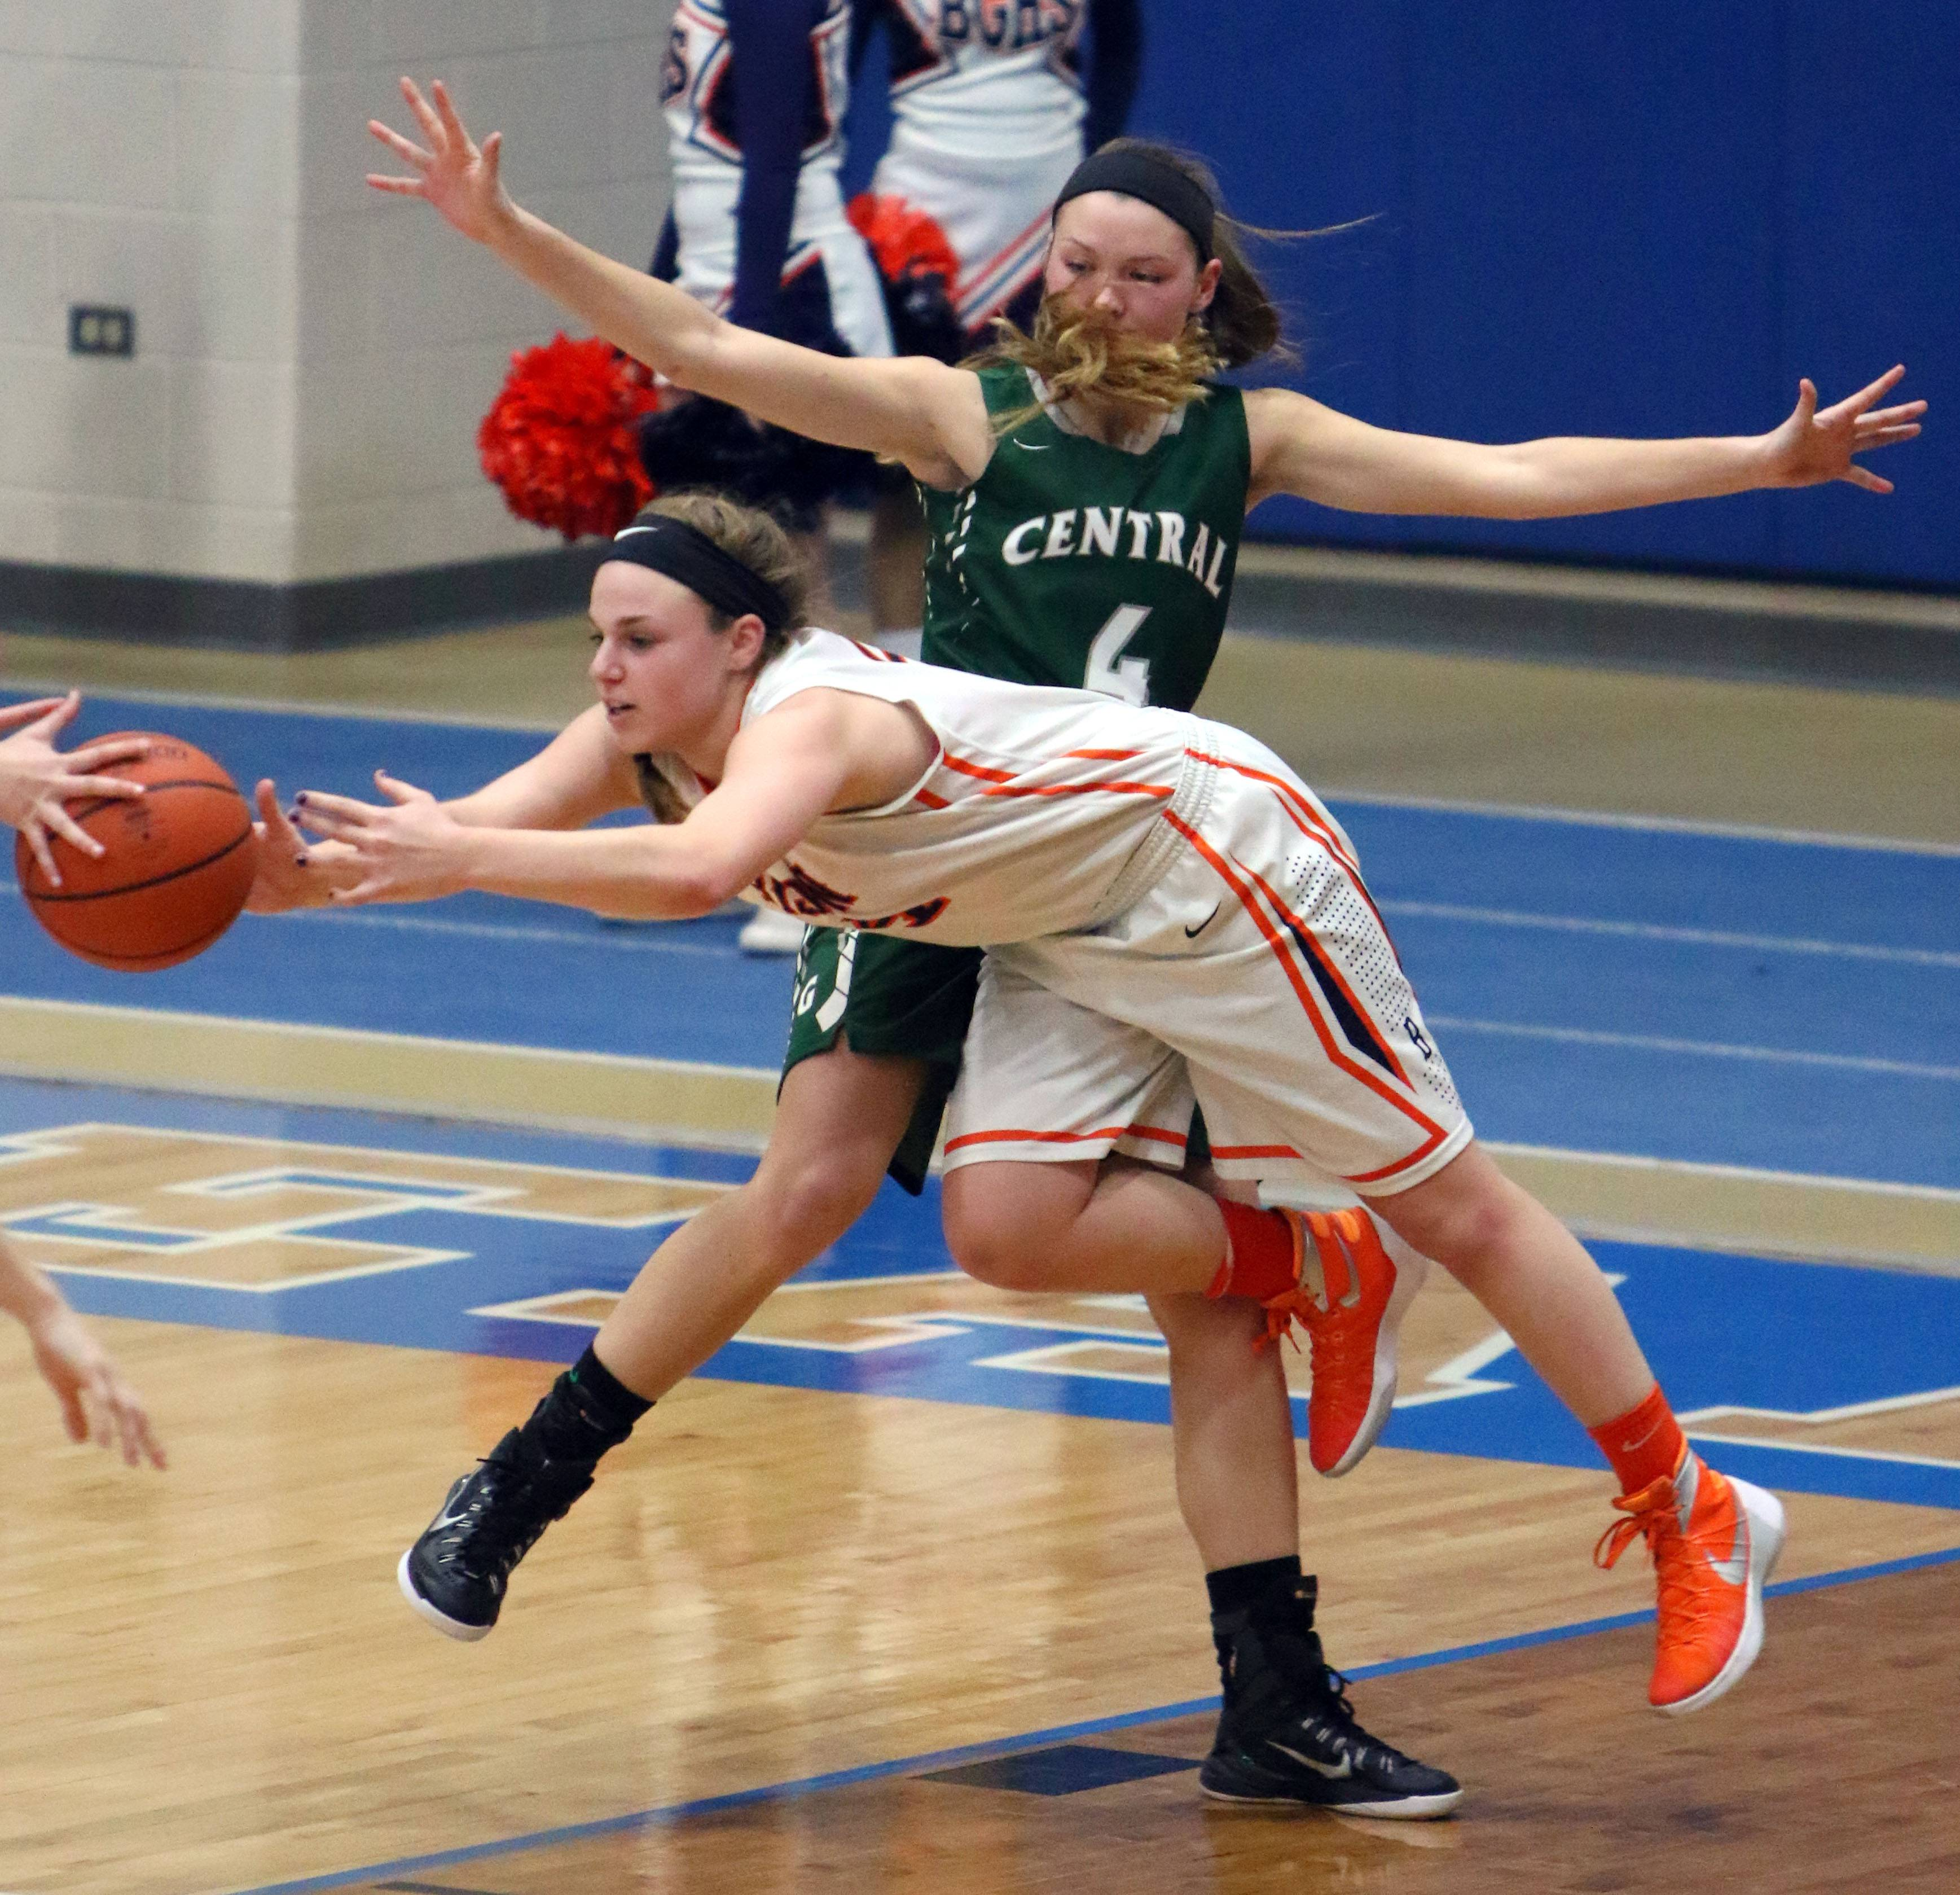 Buffalo Grove's Georgette Topalis battles around Grayslake Central defender Lindsay Brust during Class 4A regional semifinal play last season.